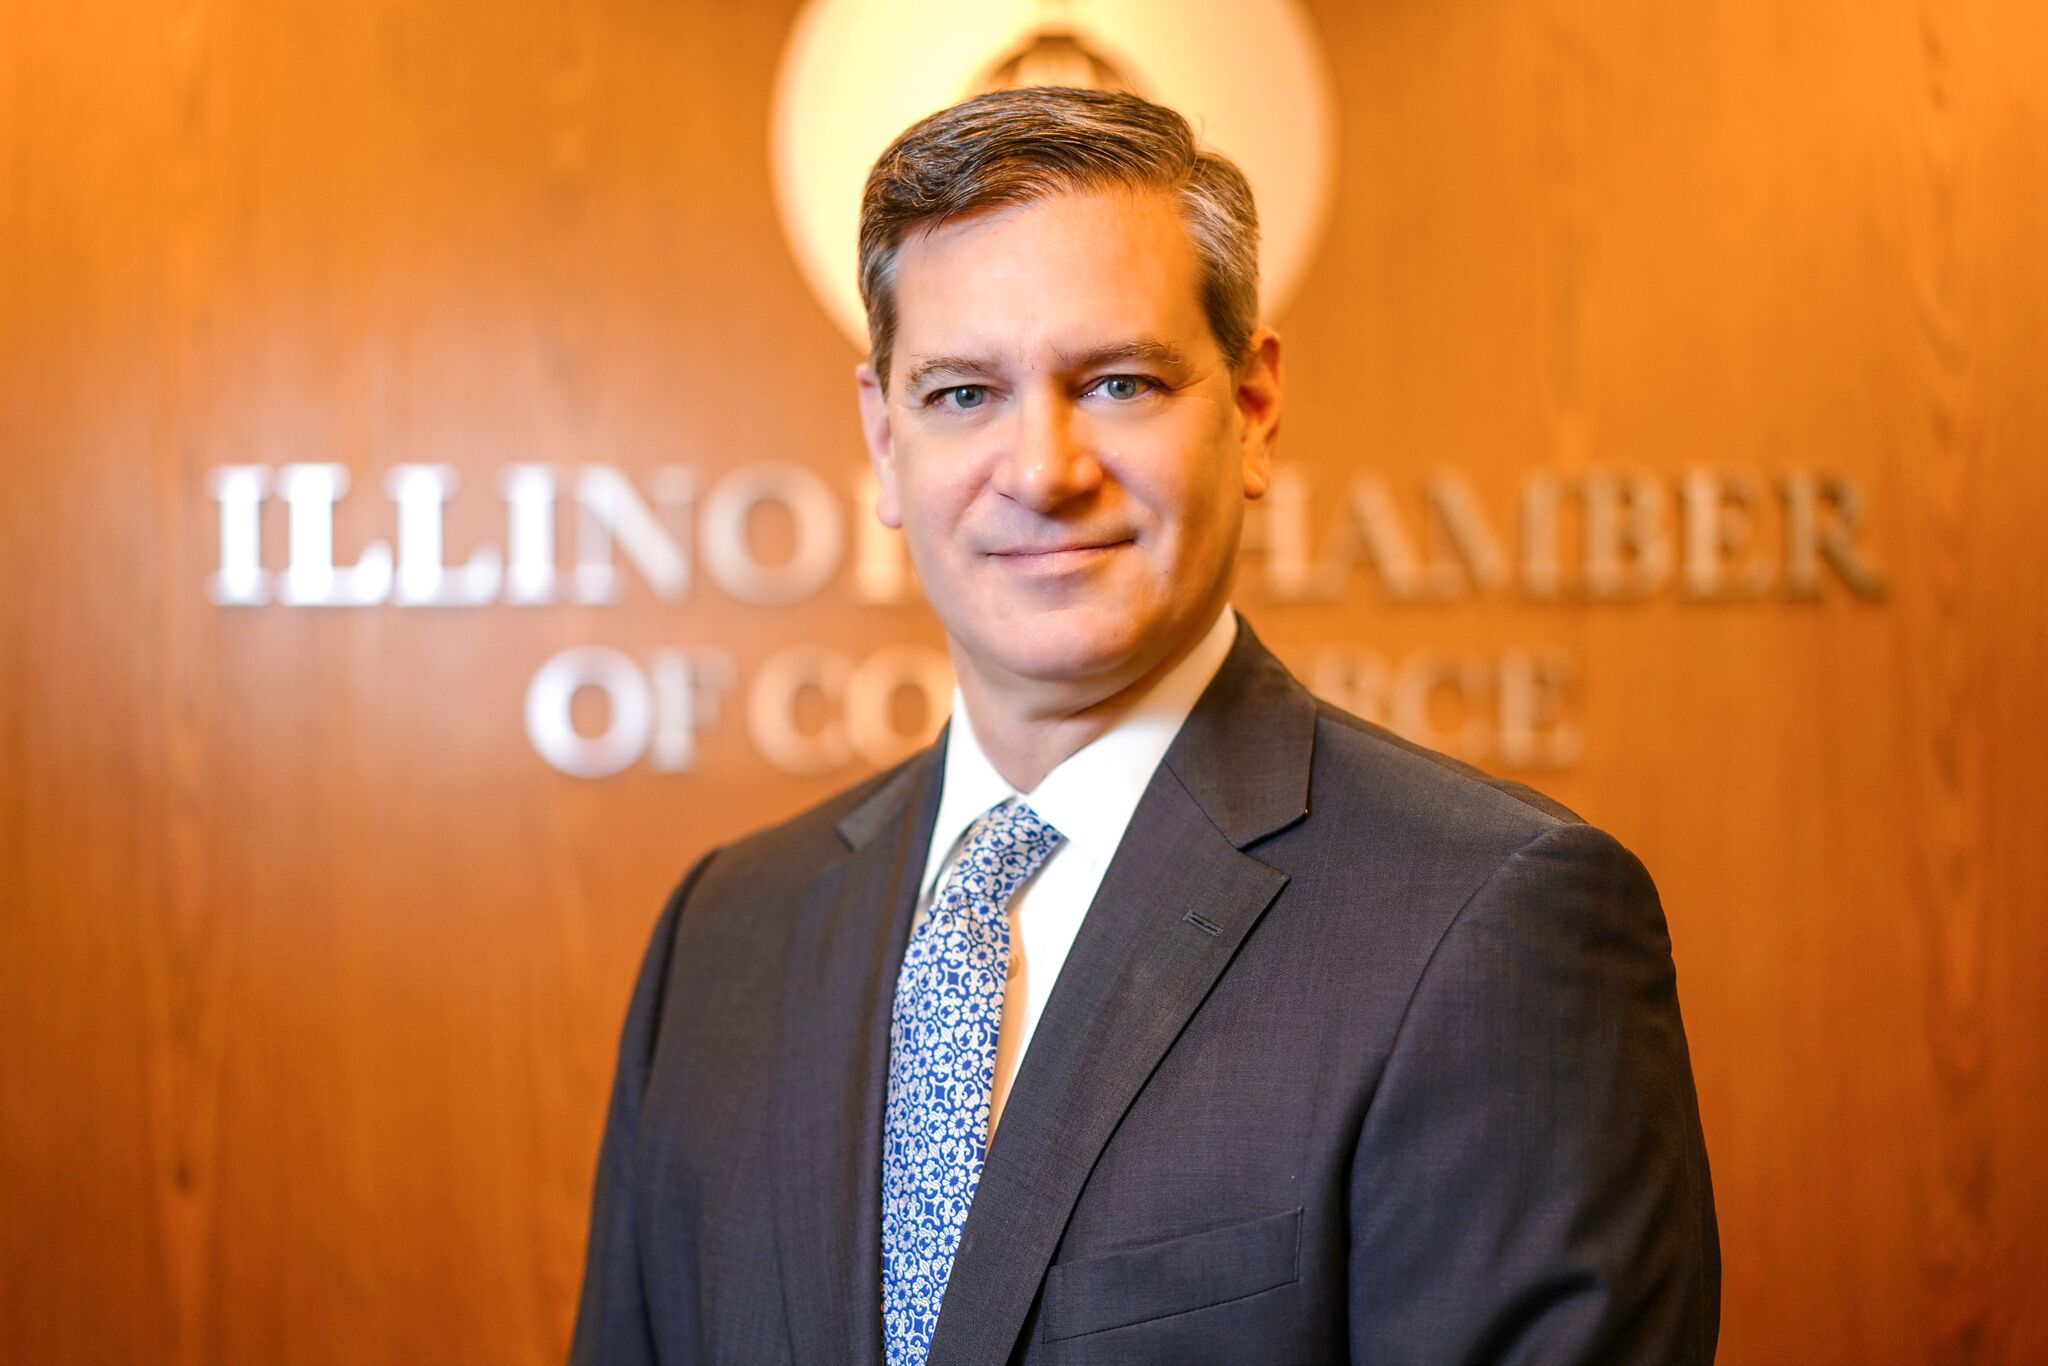 Illinois Chamber of Commerce President Talks Illinois Budget/ Businesses Leaving State